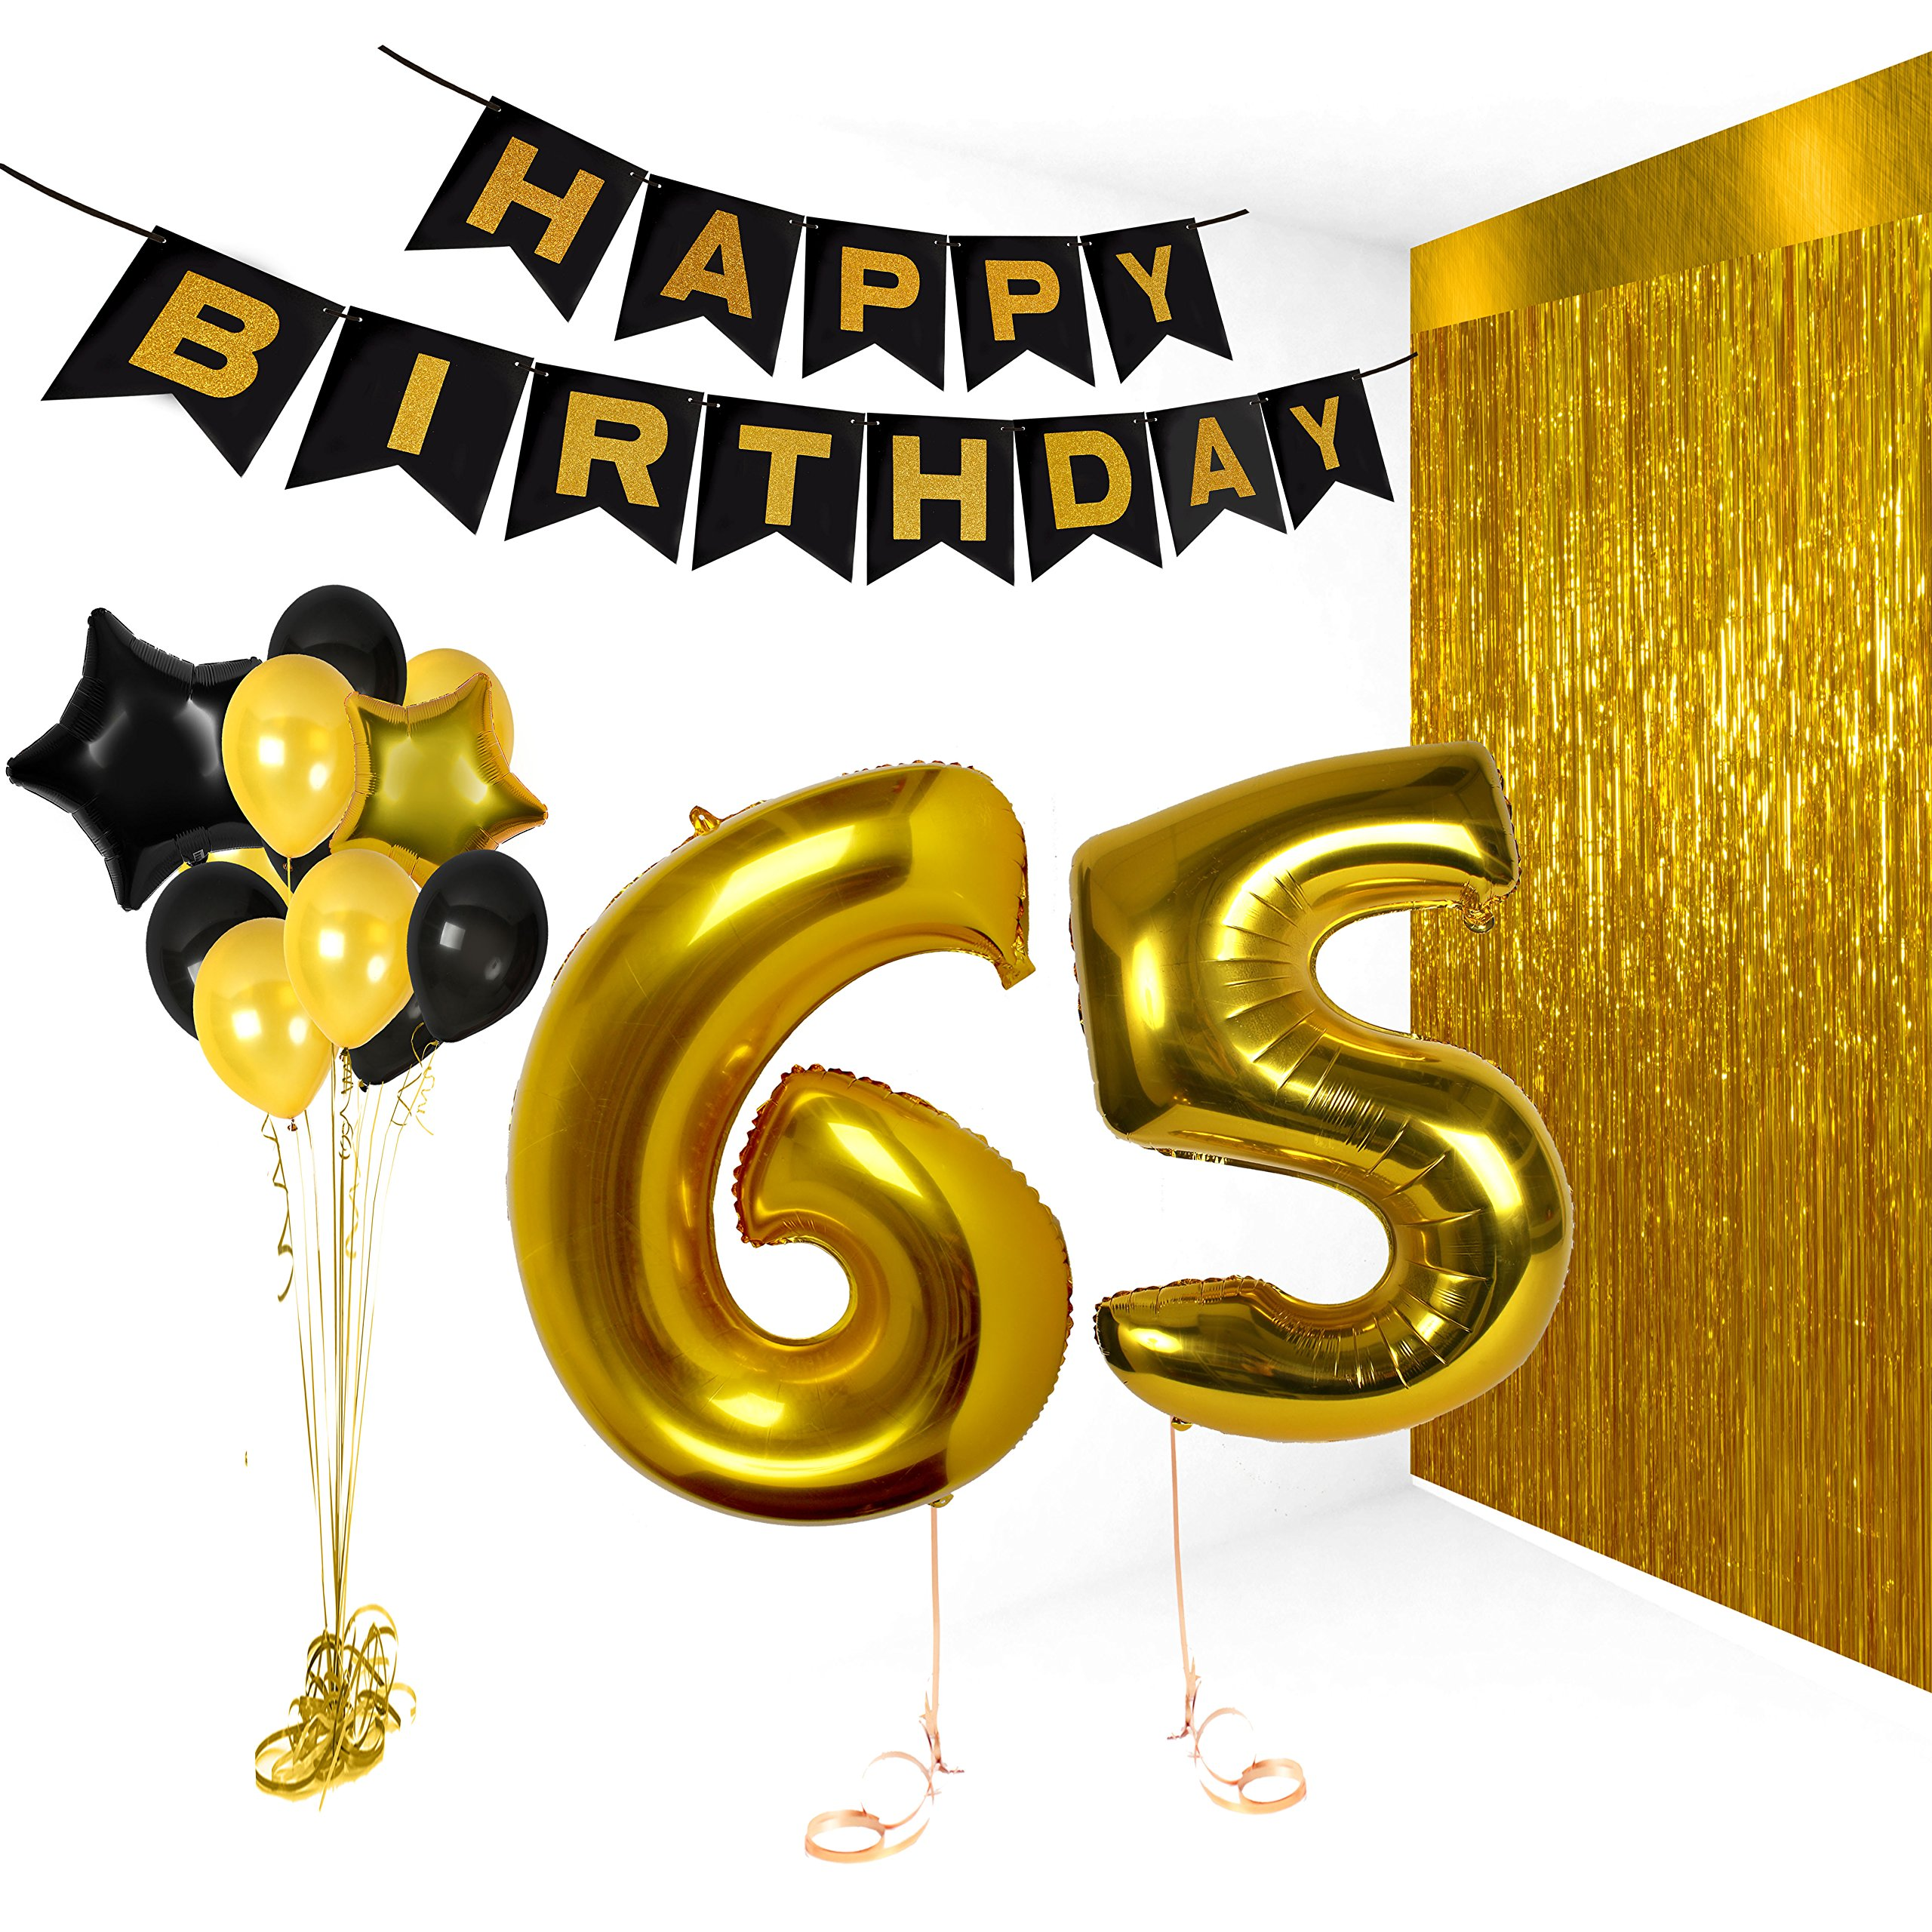 Treasures Gifted Happy 65th Birthday Decorations, Wedding Anniversary Party Banner Supplies, Decor Vday Balloons, Bday Gifts for Friends, Big Gold 40 Inch Foil Photo Props